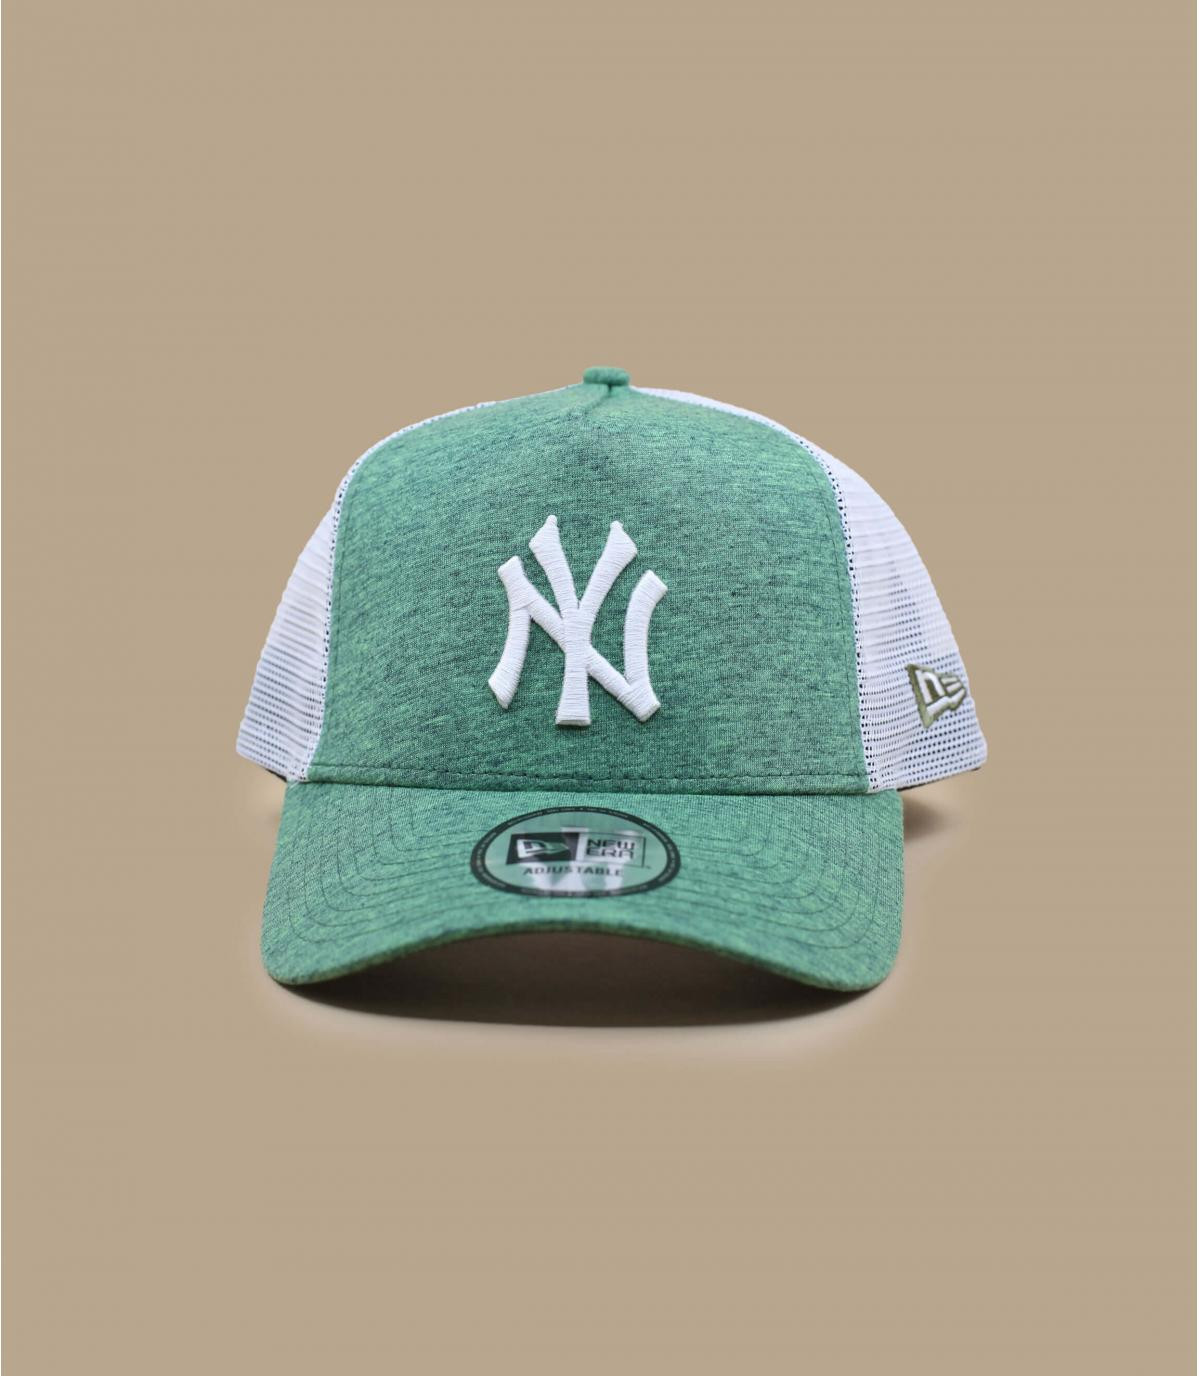 Détails Trucker Jersey NY green - image 2